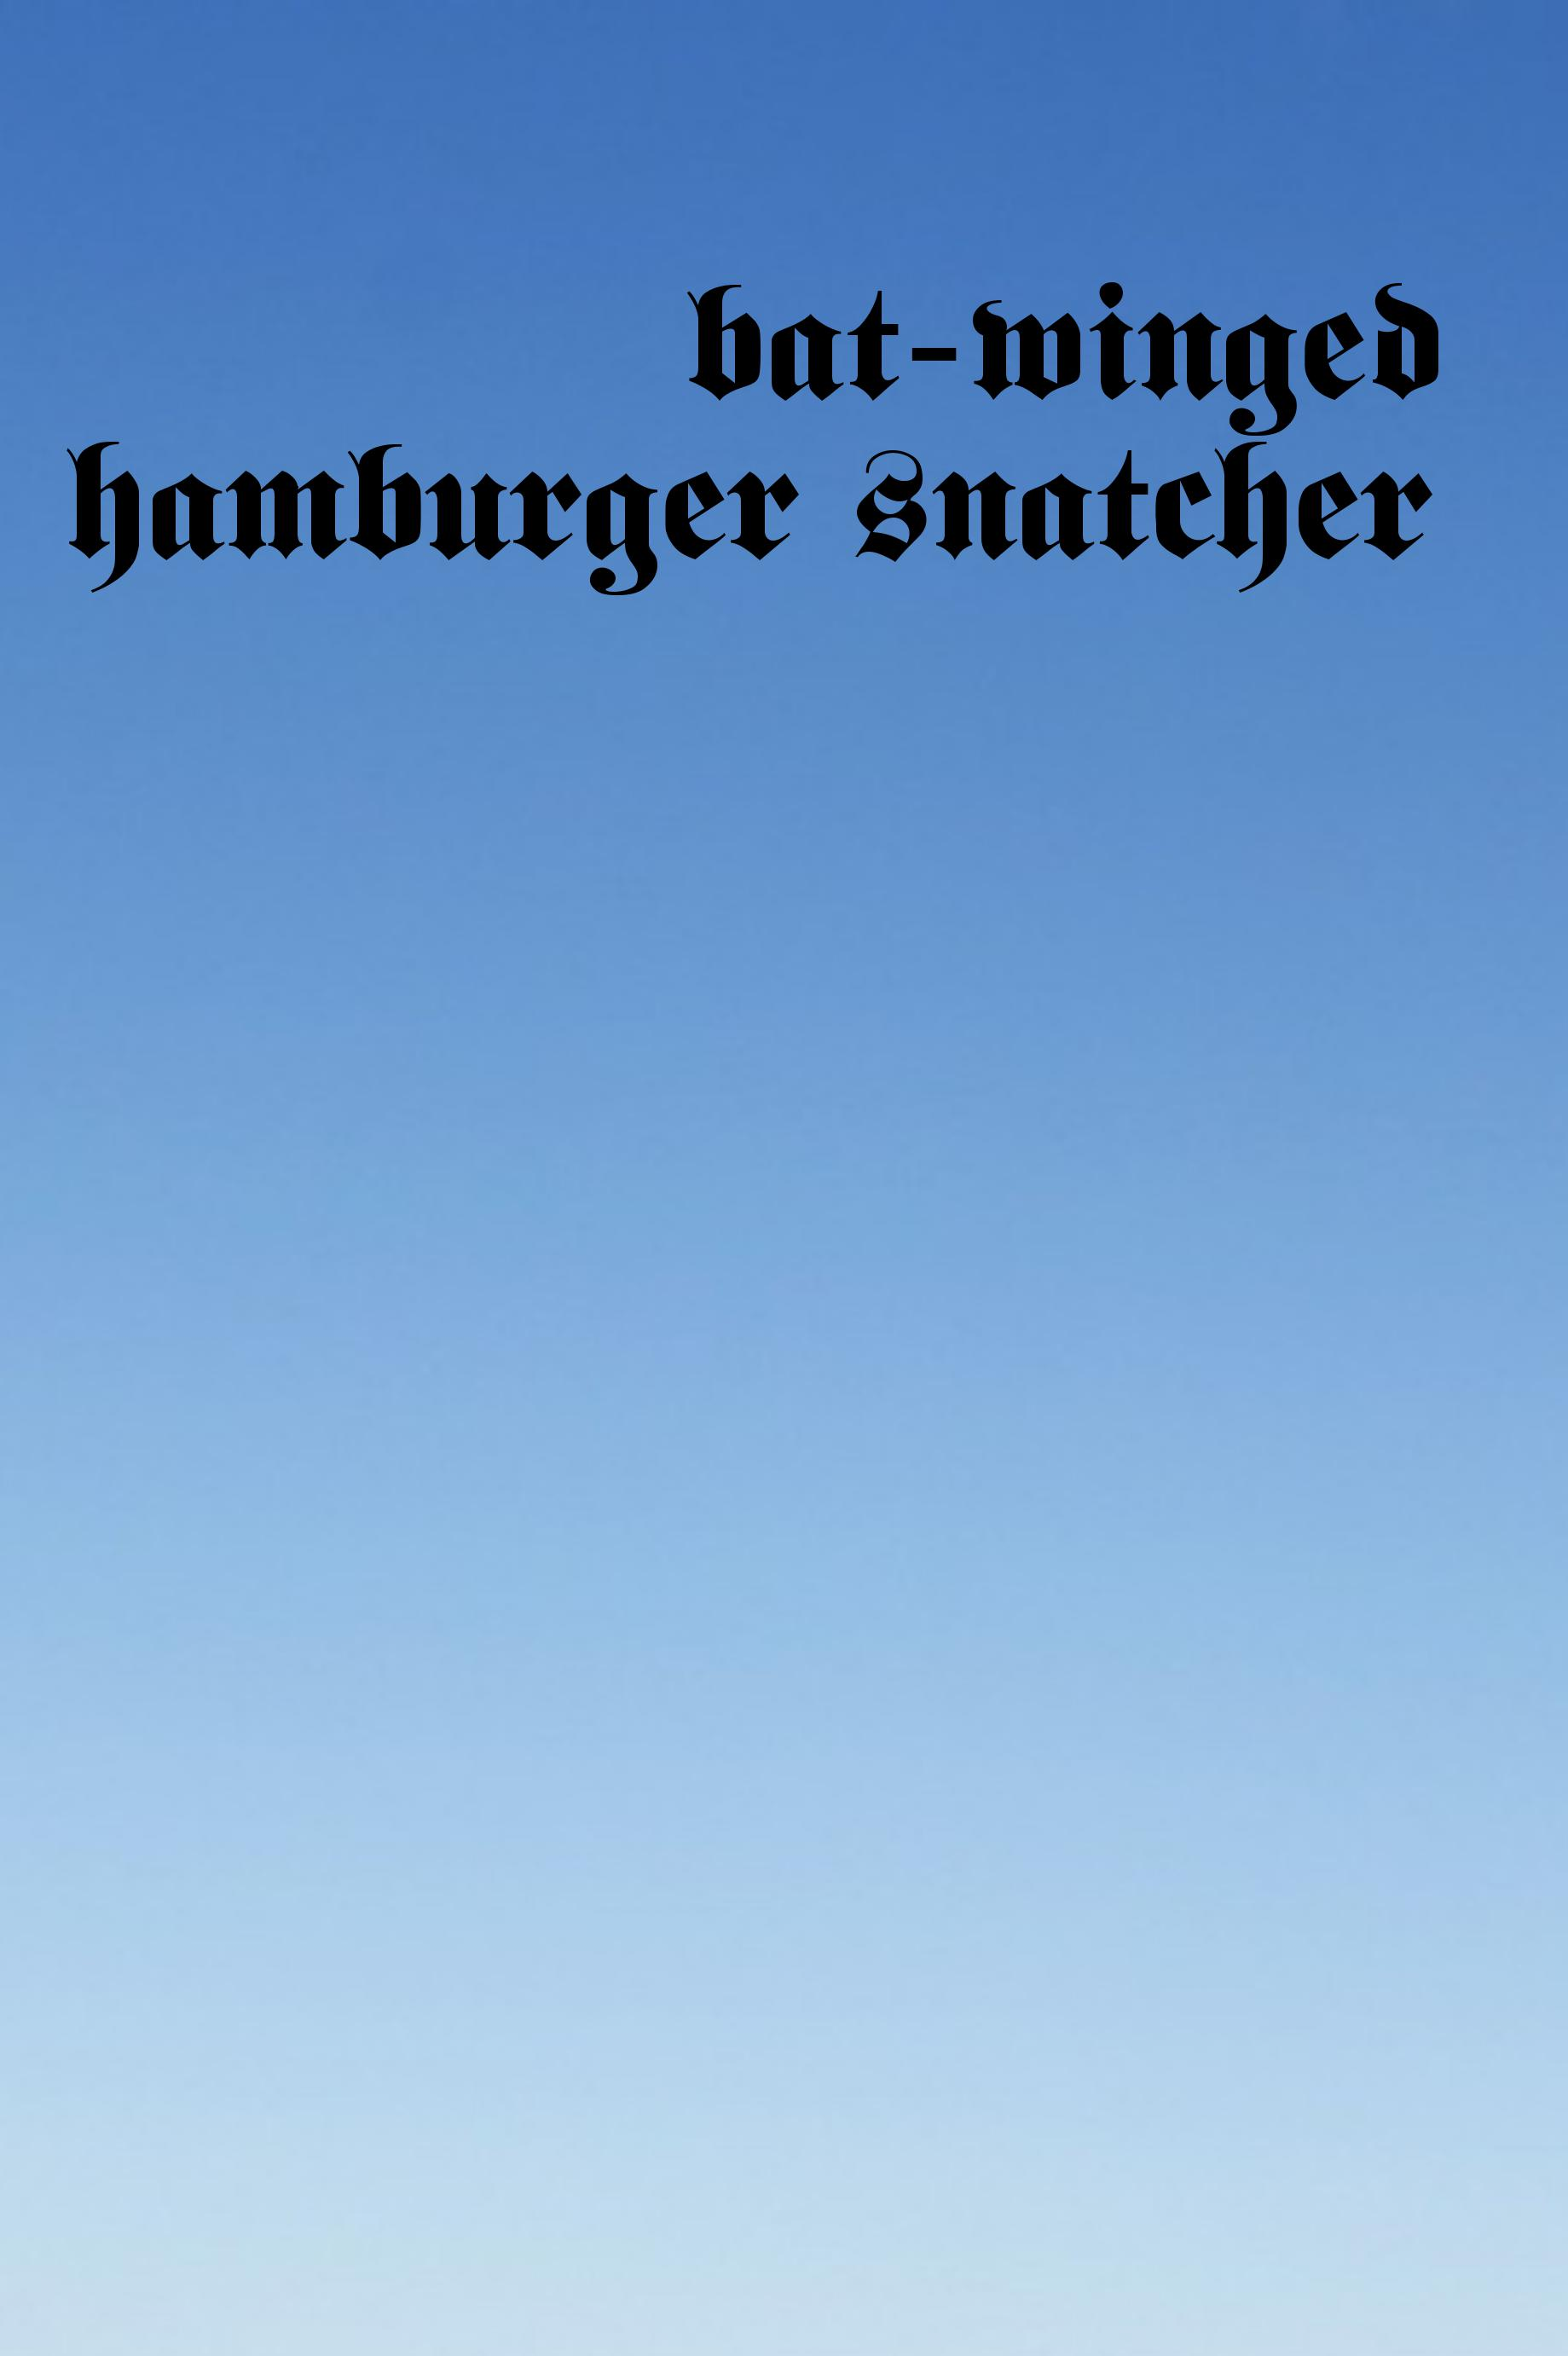 bat-winged hamburger snatcher